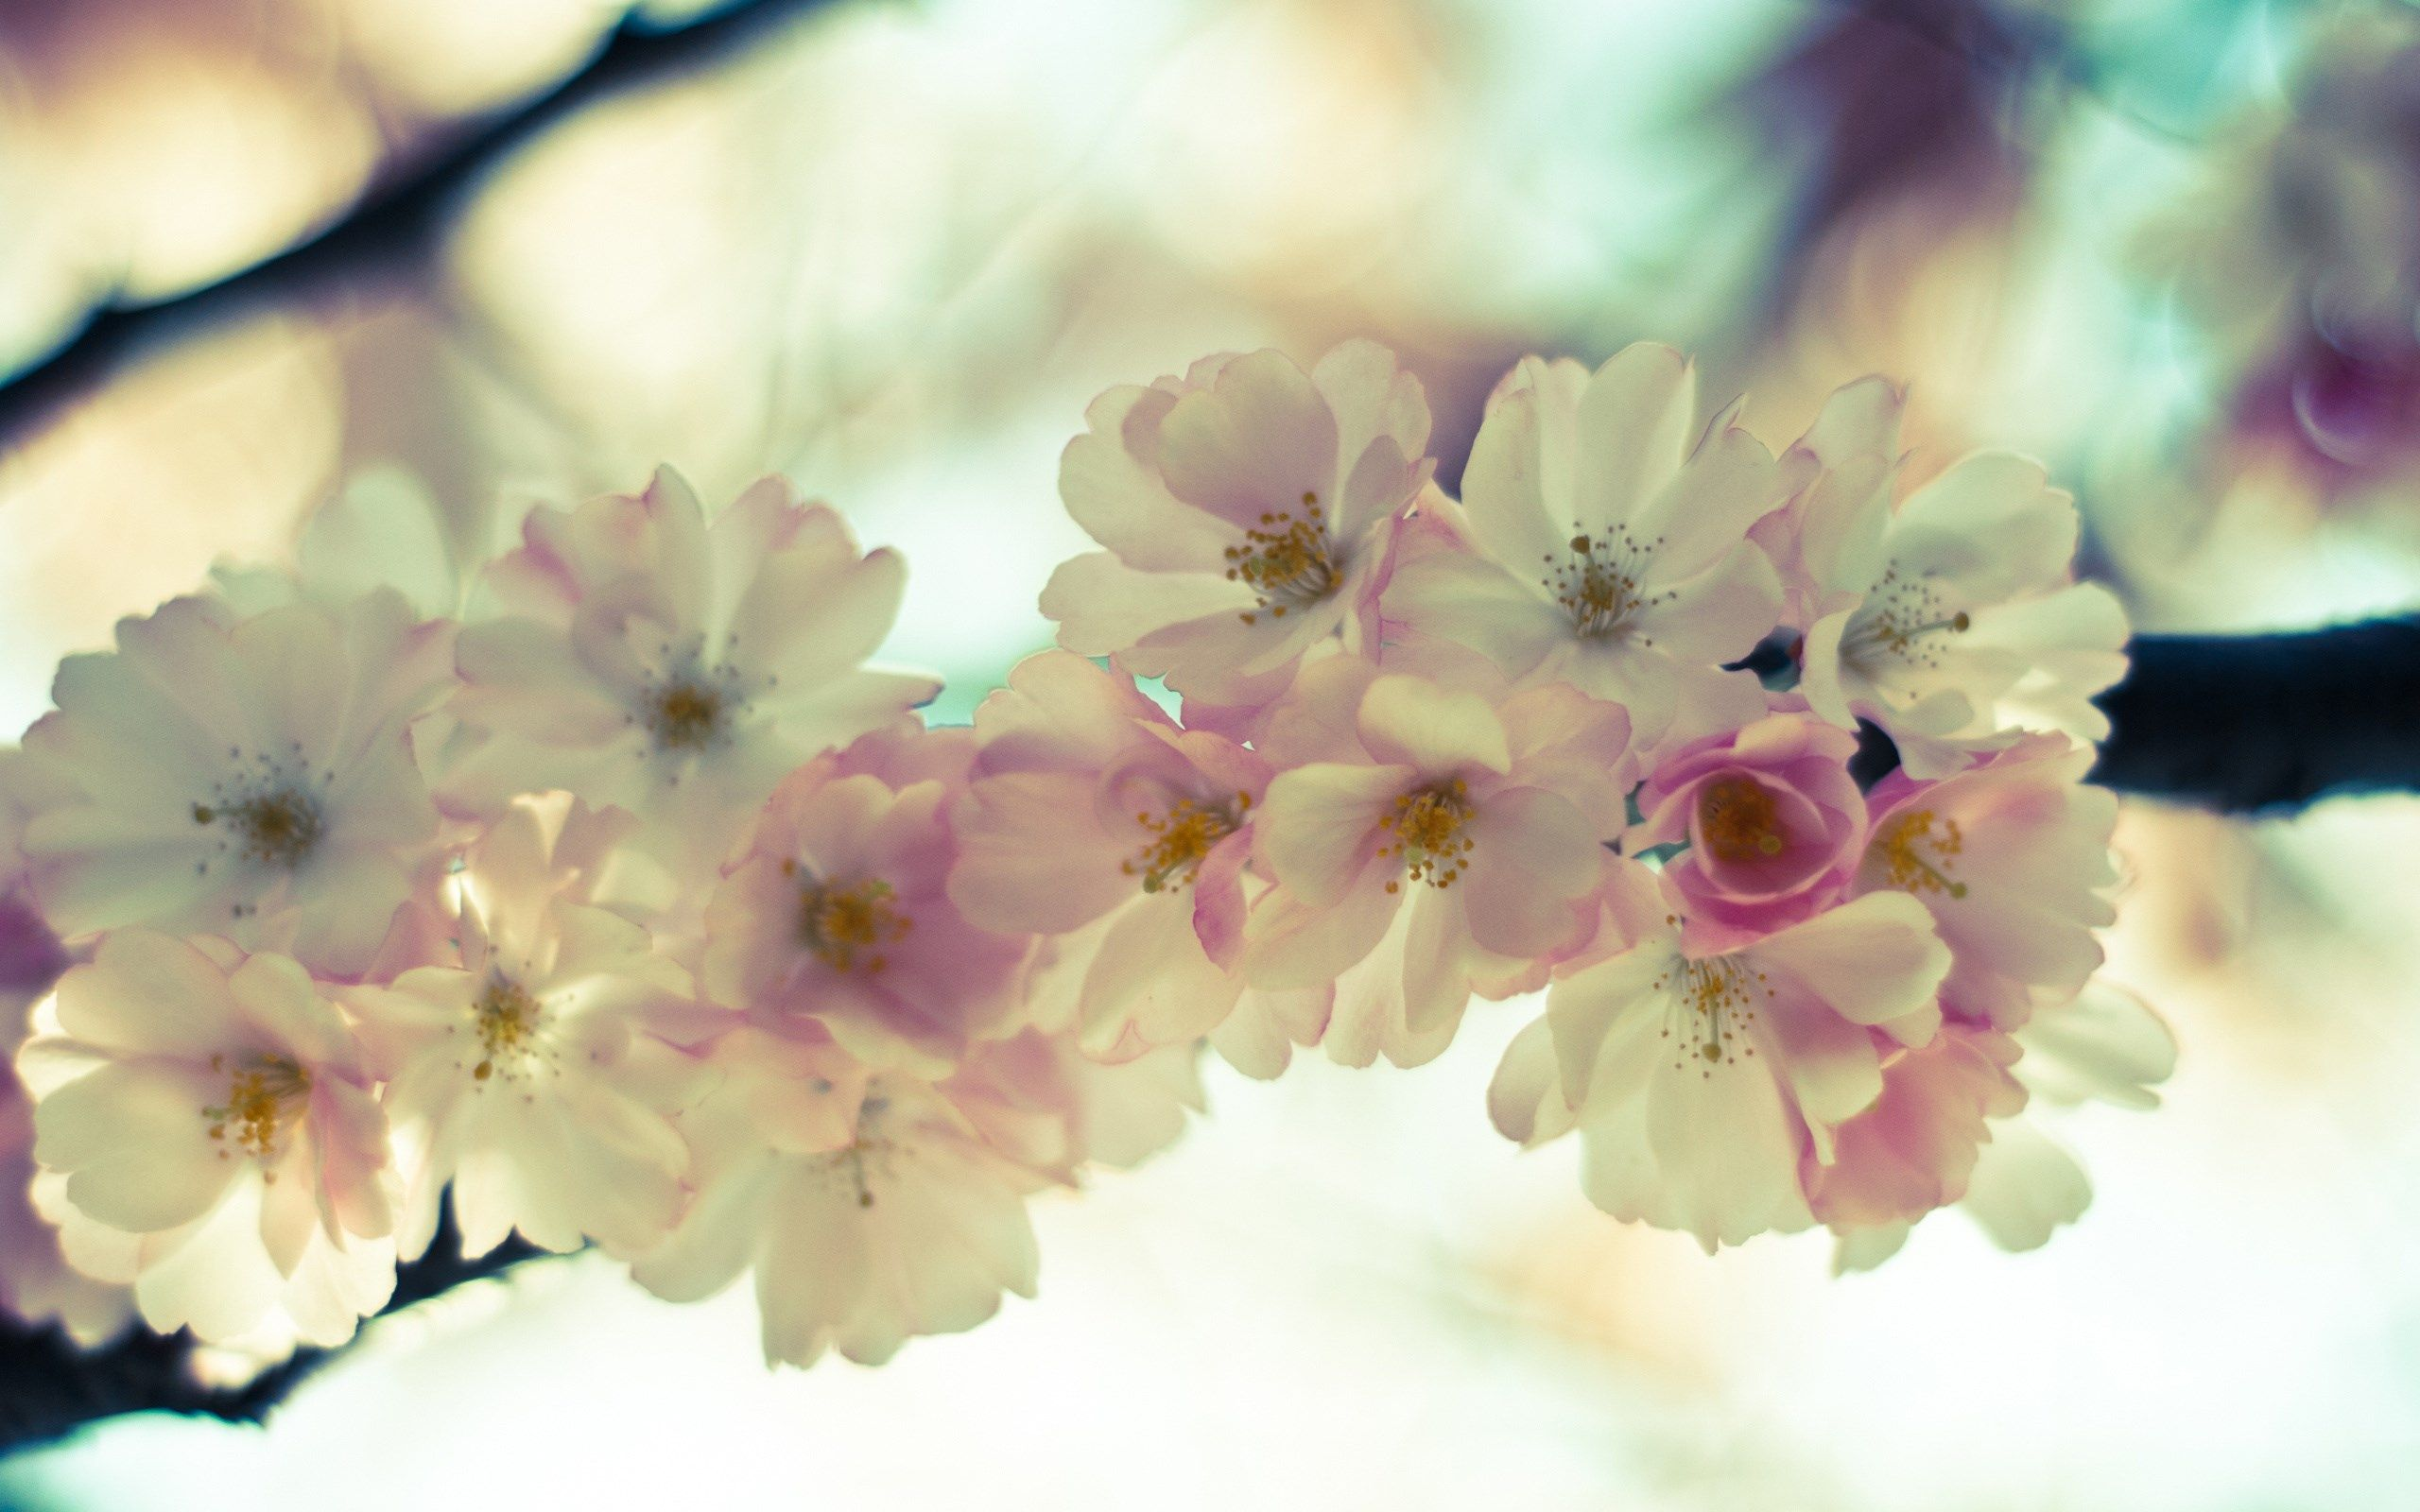 2560x1600 Widescreen Wallpaper blossom Blossom, Cherry